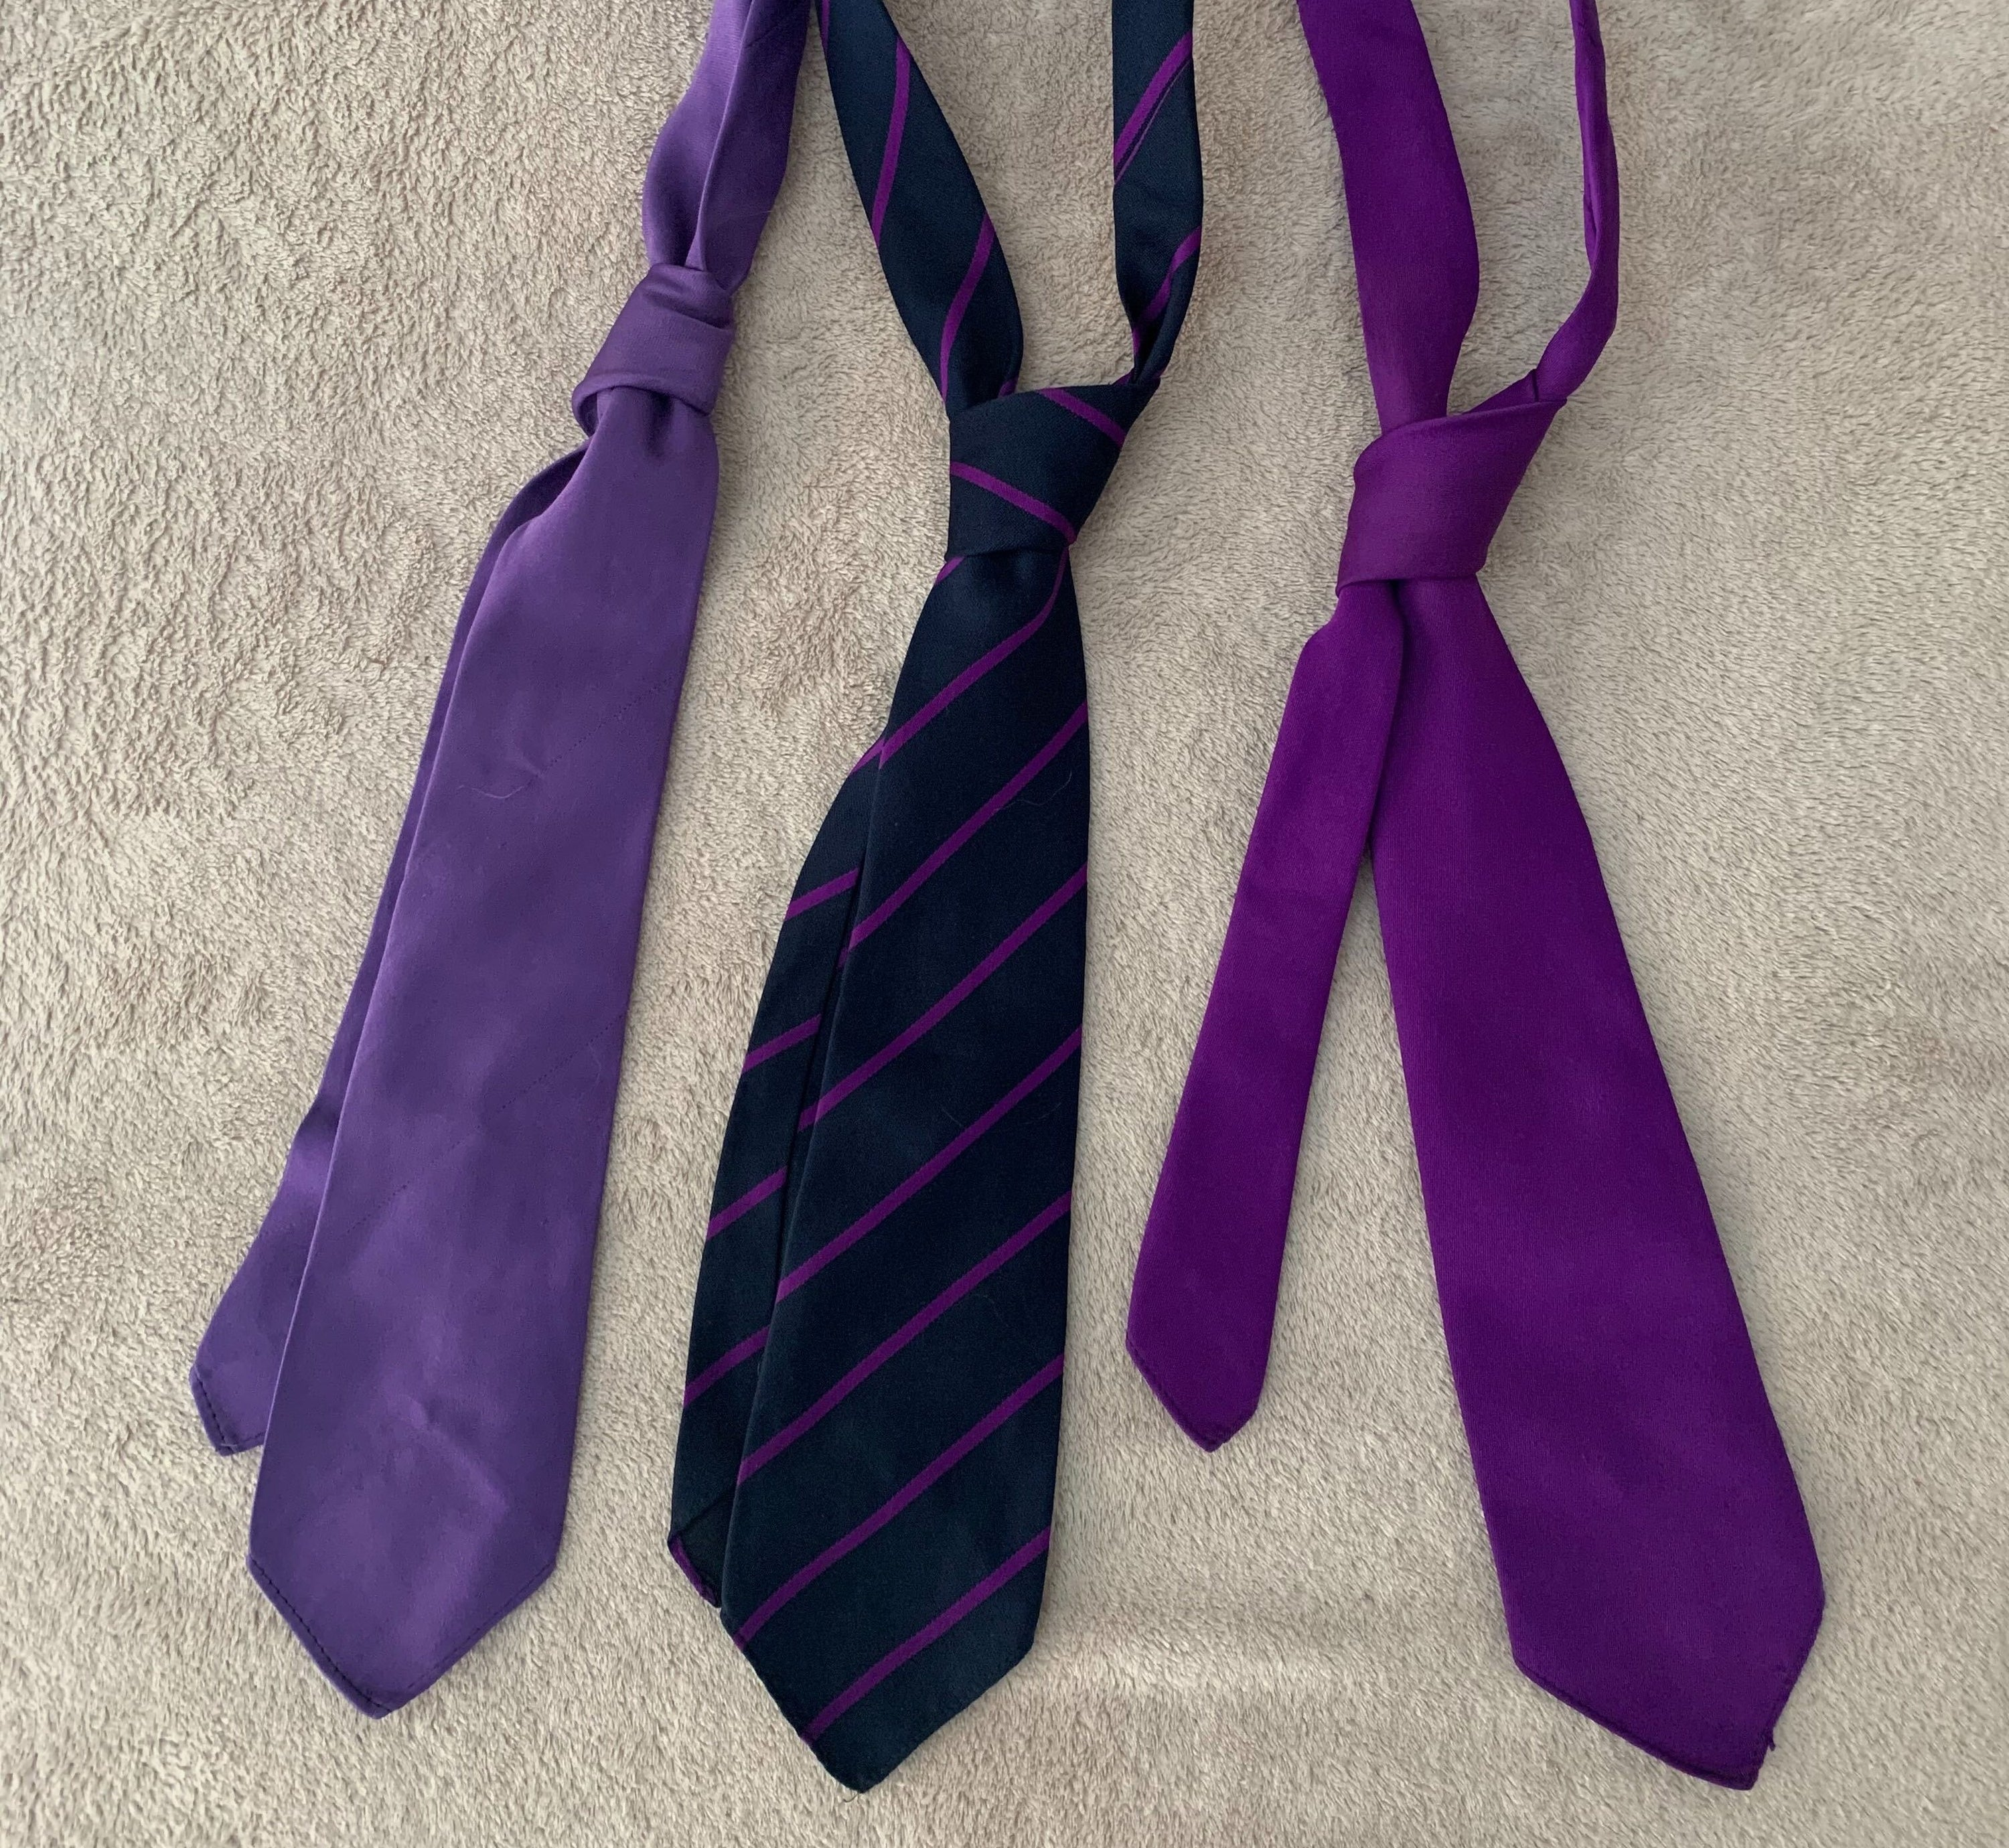 3 purple neck ties laid out